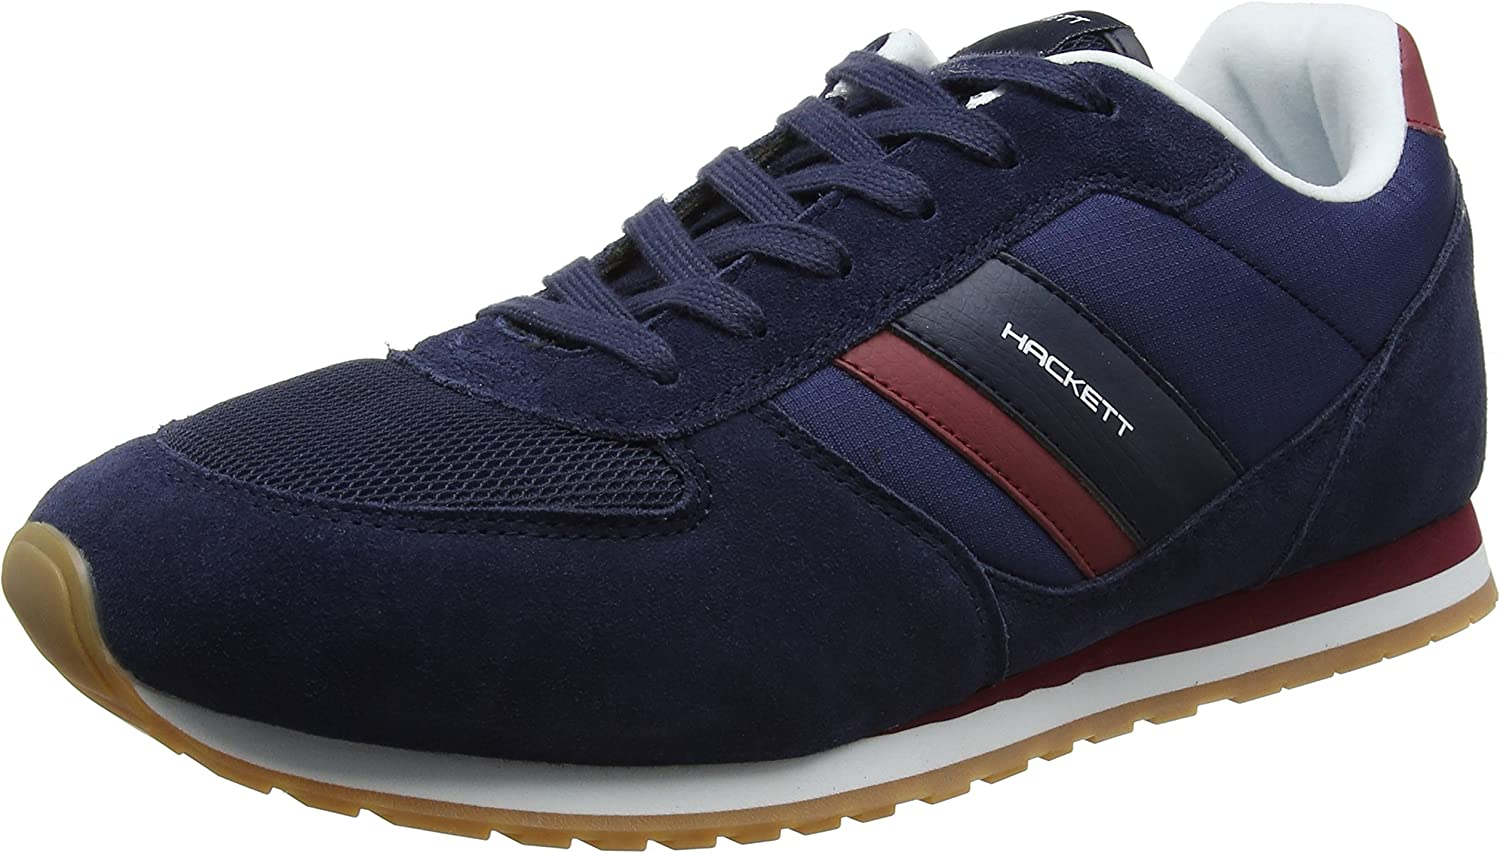 Hackett Men's Leather Fabric Sneakers shoes